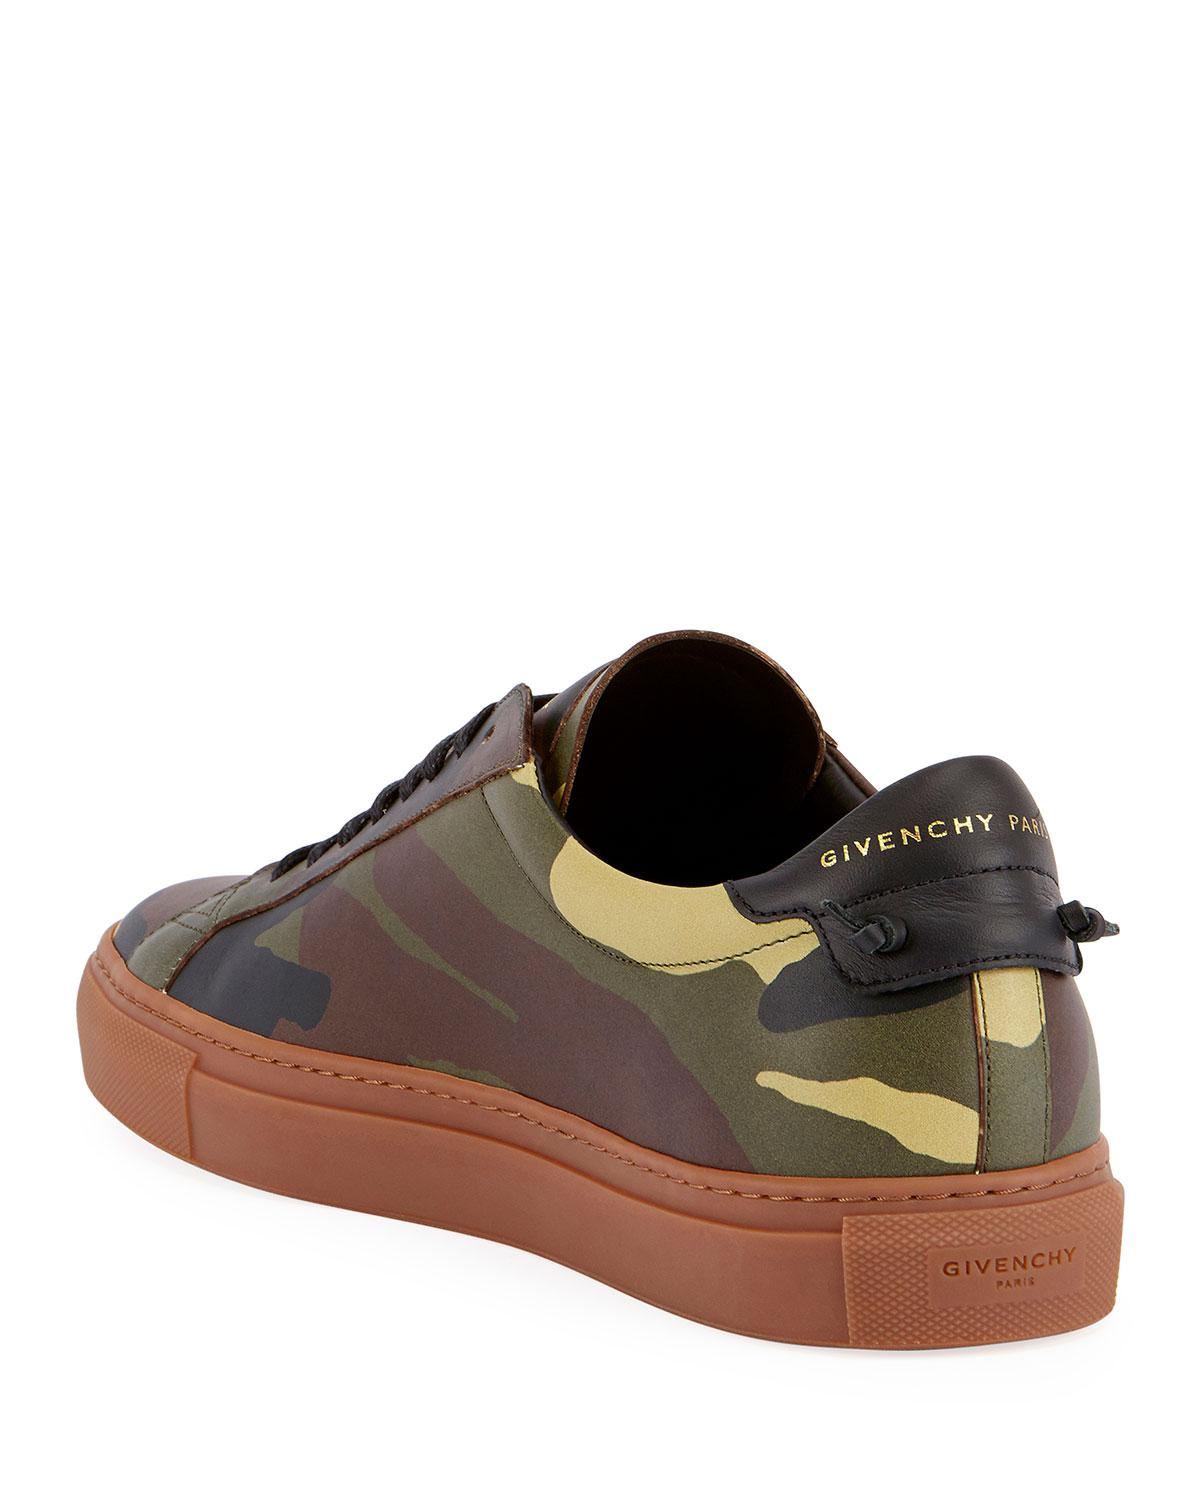 808789aa8c2 Lyst - Givenchy Urban Street Camouflage Leather Low-top Sneaker in ...